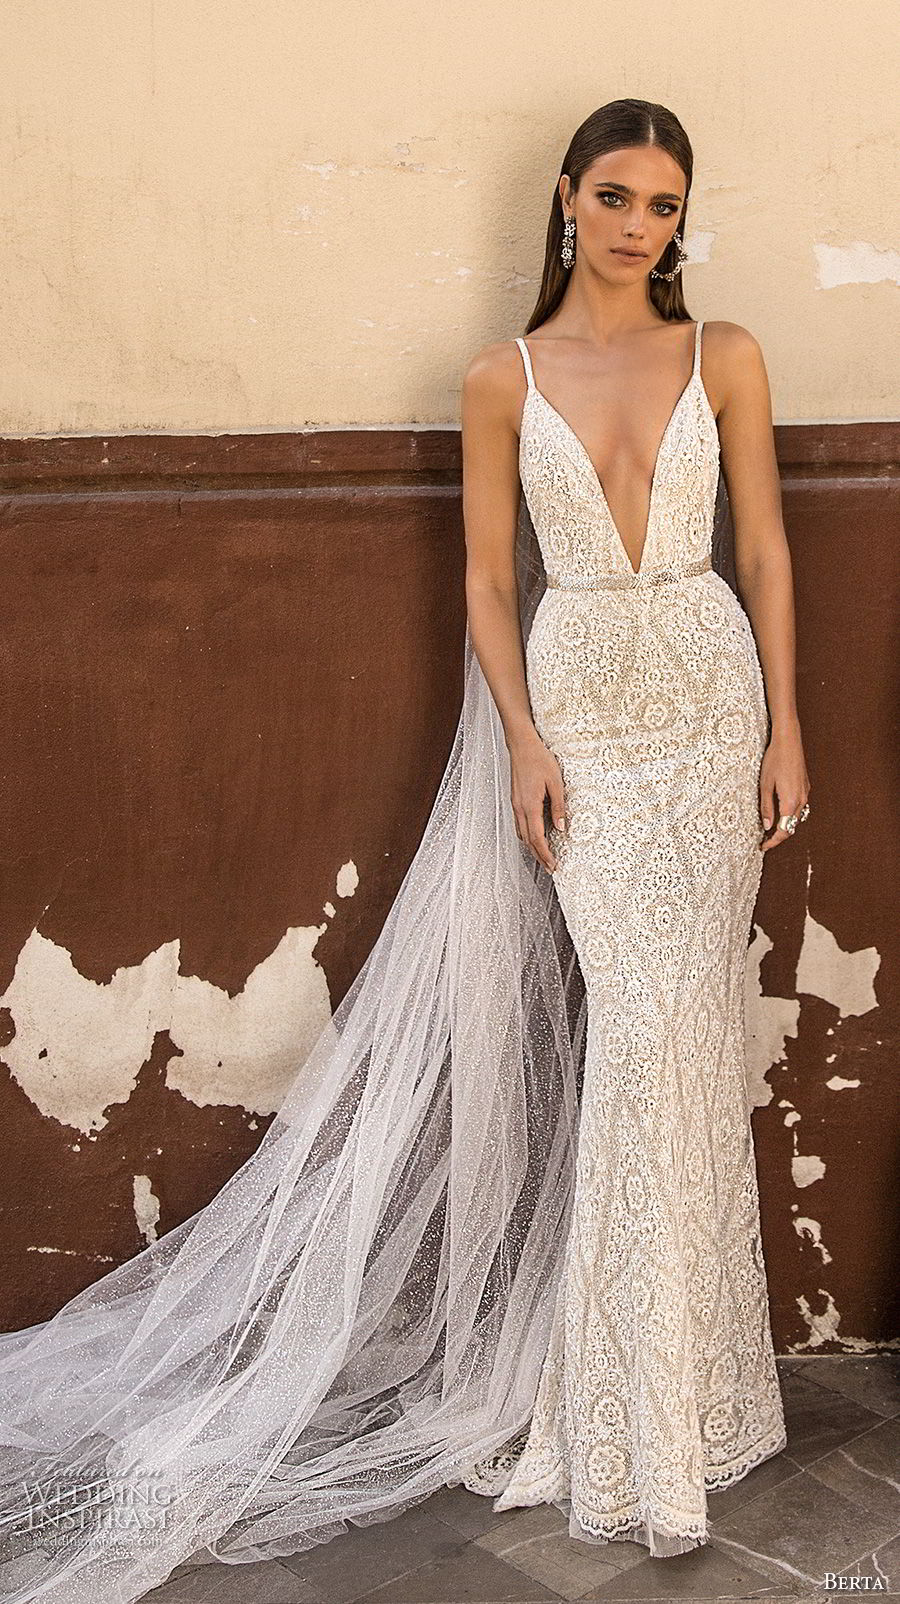 berta fall 2018 bridal sleeveless spaghetti strap deep v neck full embellishment elegant sexy sheath wedding dress open back sweep train (25) mv